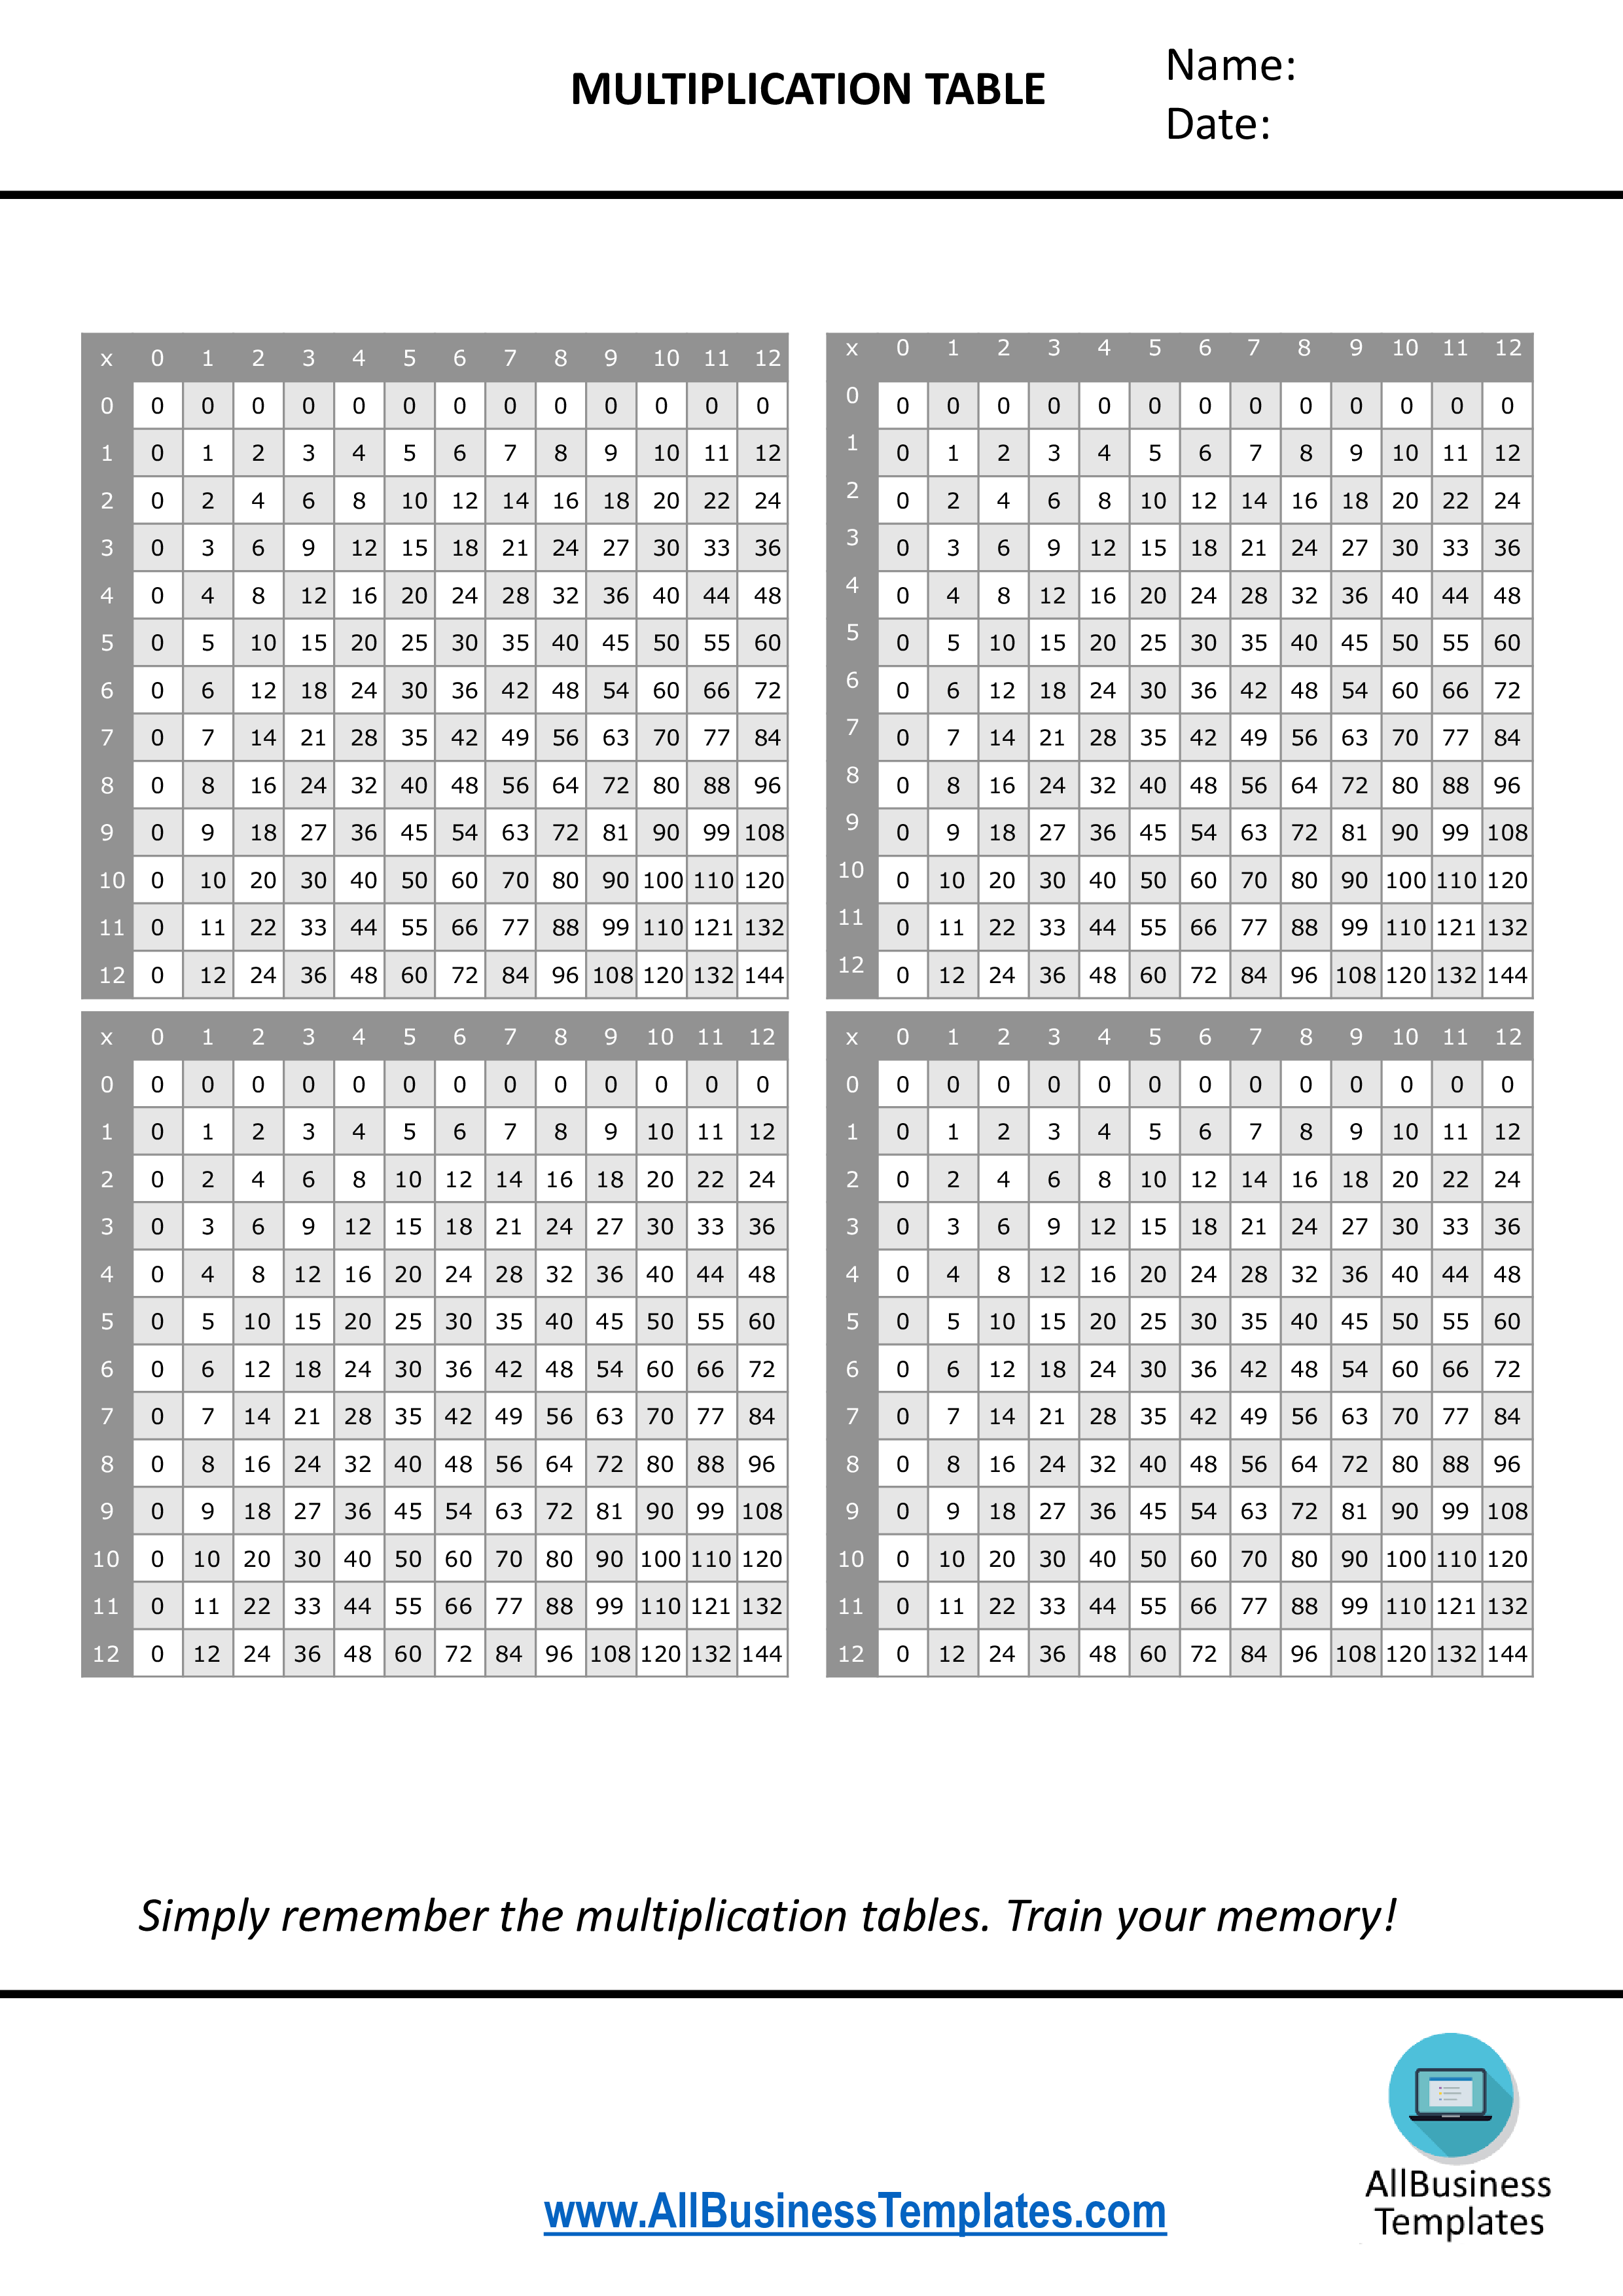 Multiplication tables images choice image periodic table images free multiplication tables templates at allbusinesstemplates multiplication tables main image gamestrikefo choice image gamestrikefo Image collections